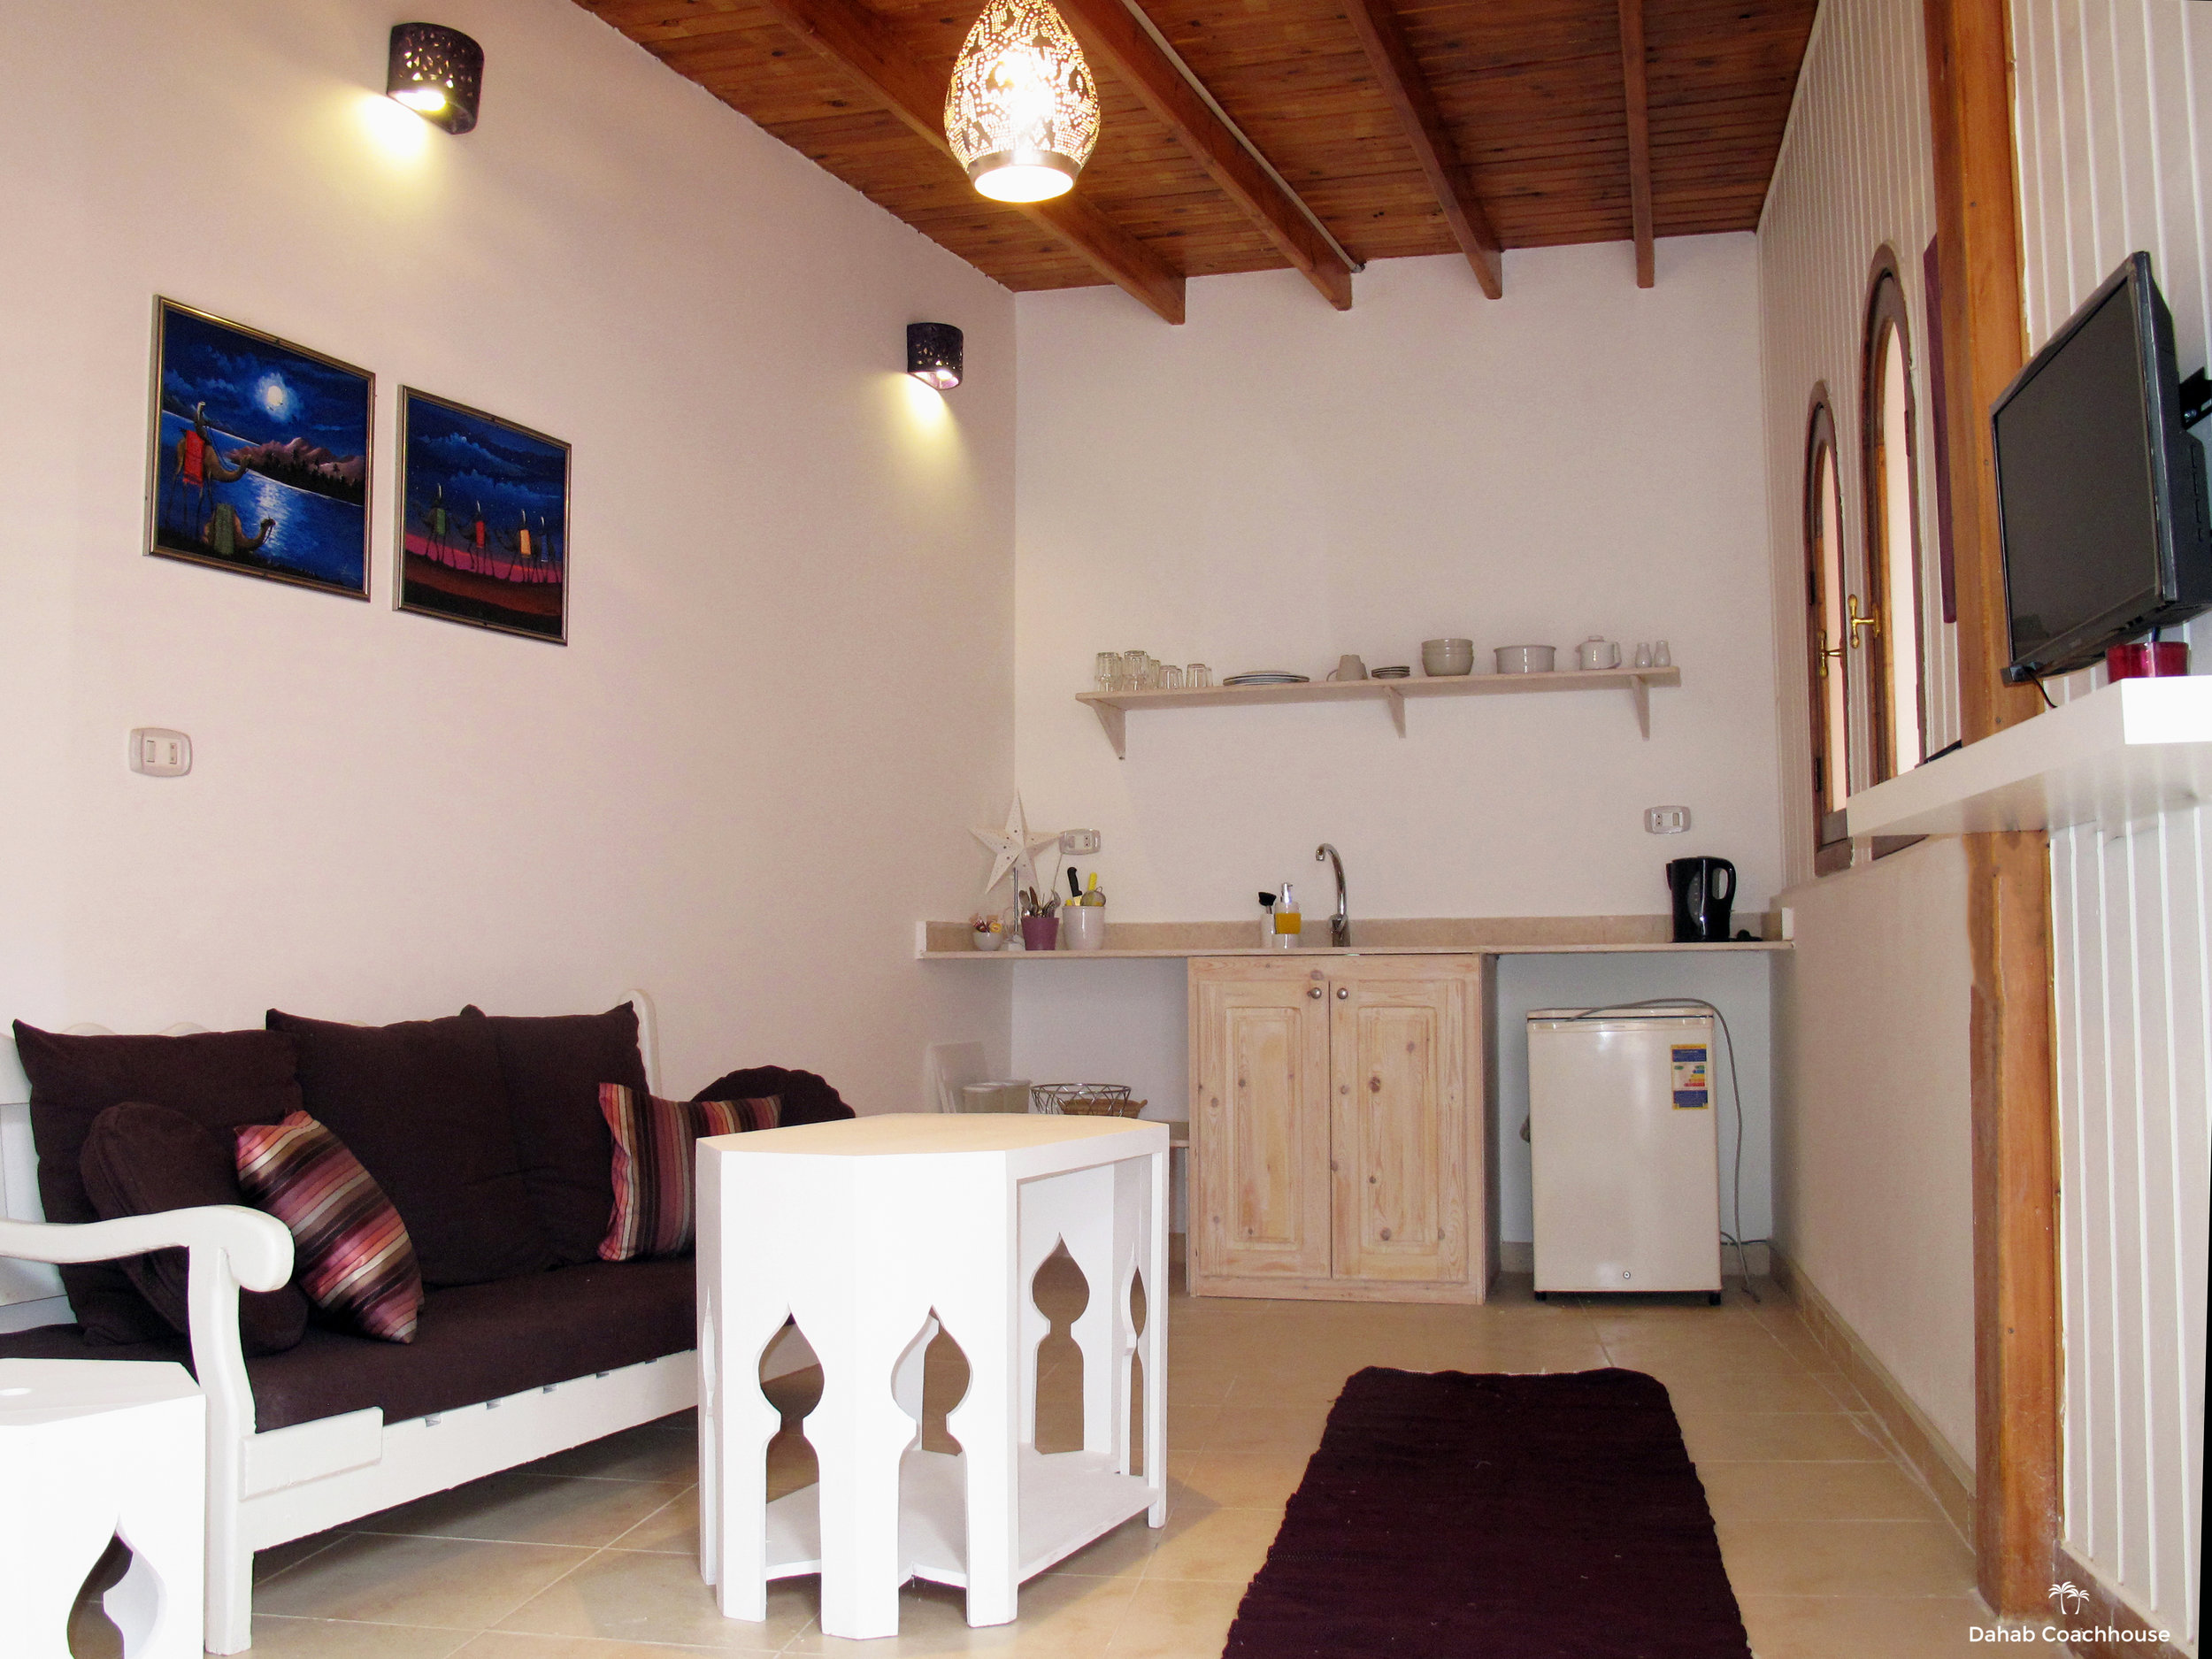 Dahab_Coachhouse_courtyard_hotel_guesthouse_beach_diving_sea_garden_house_reception.JPG